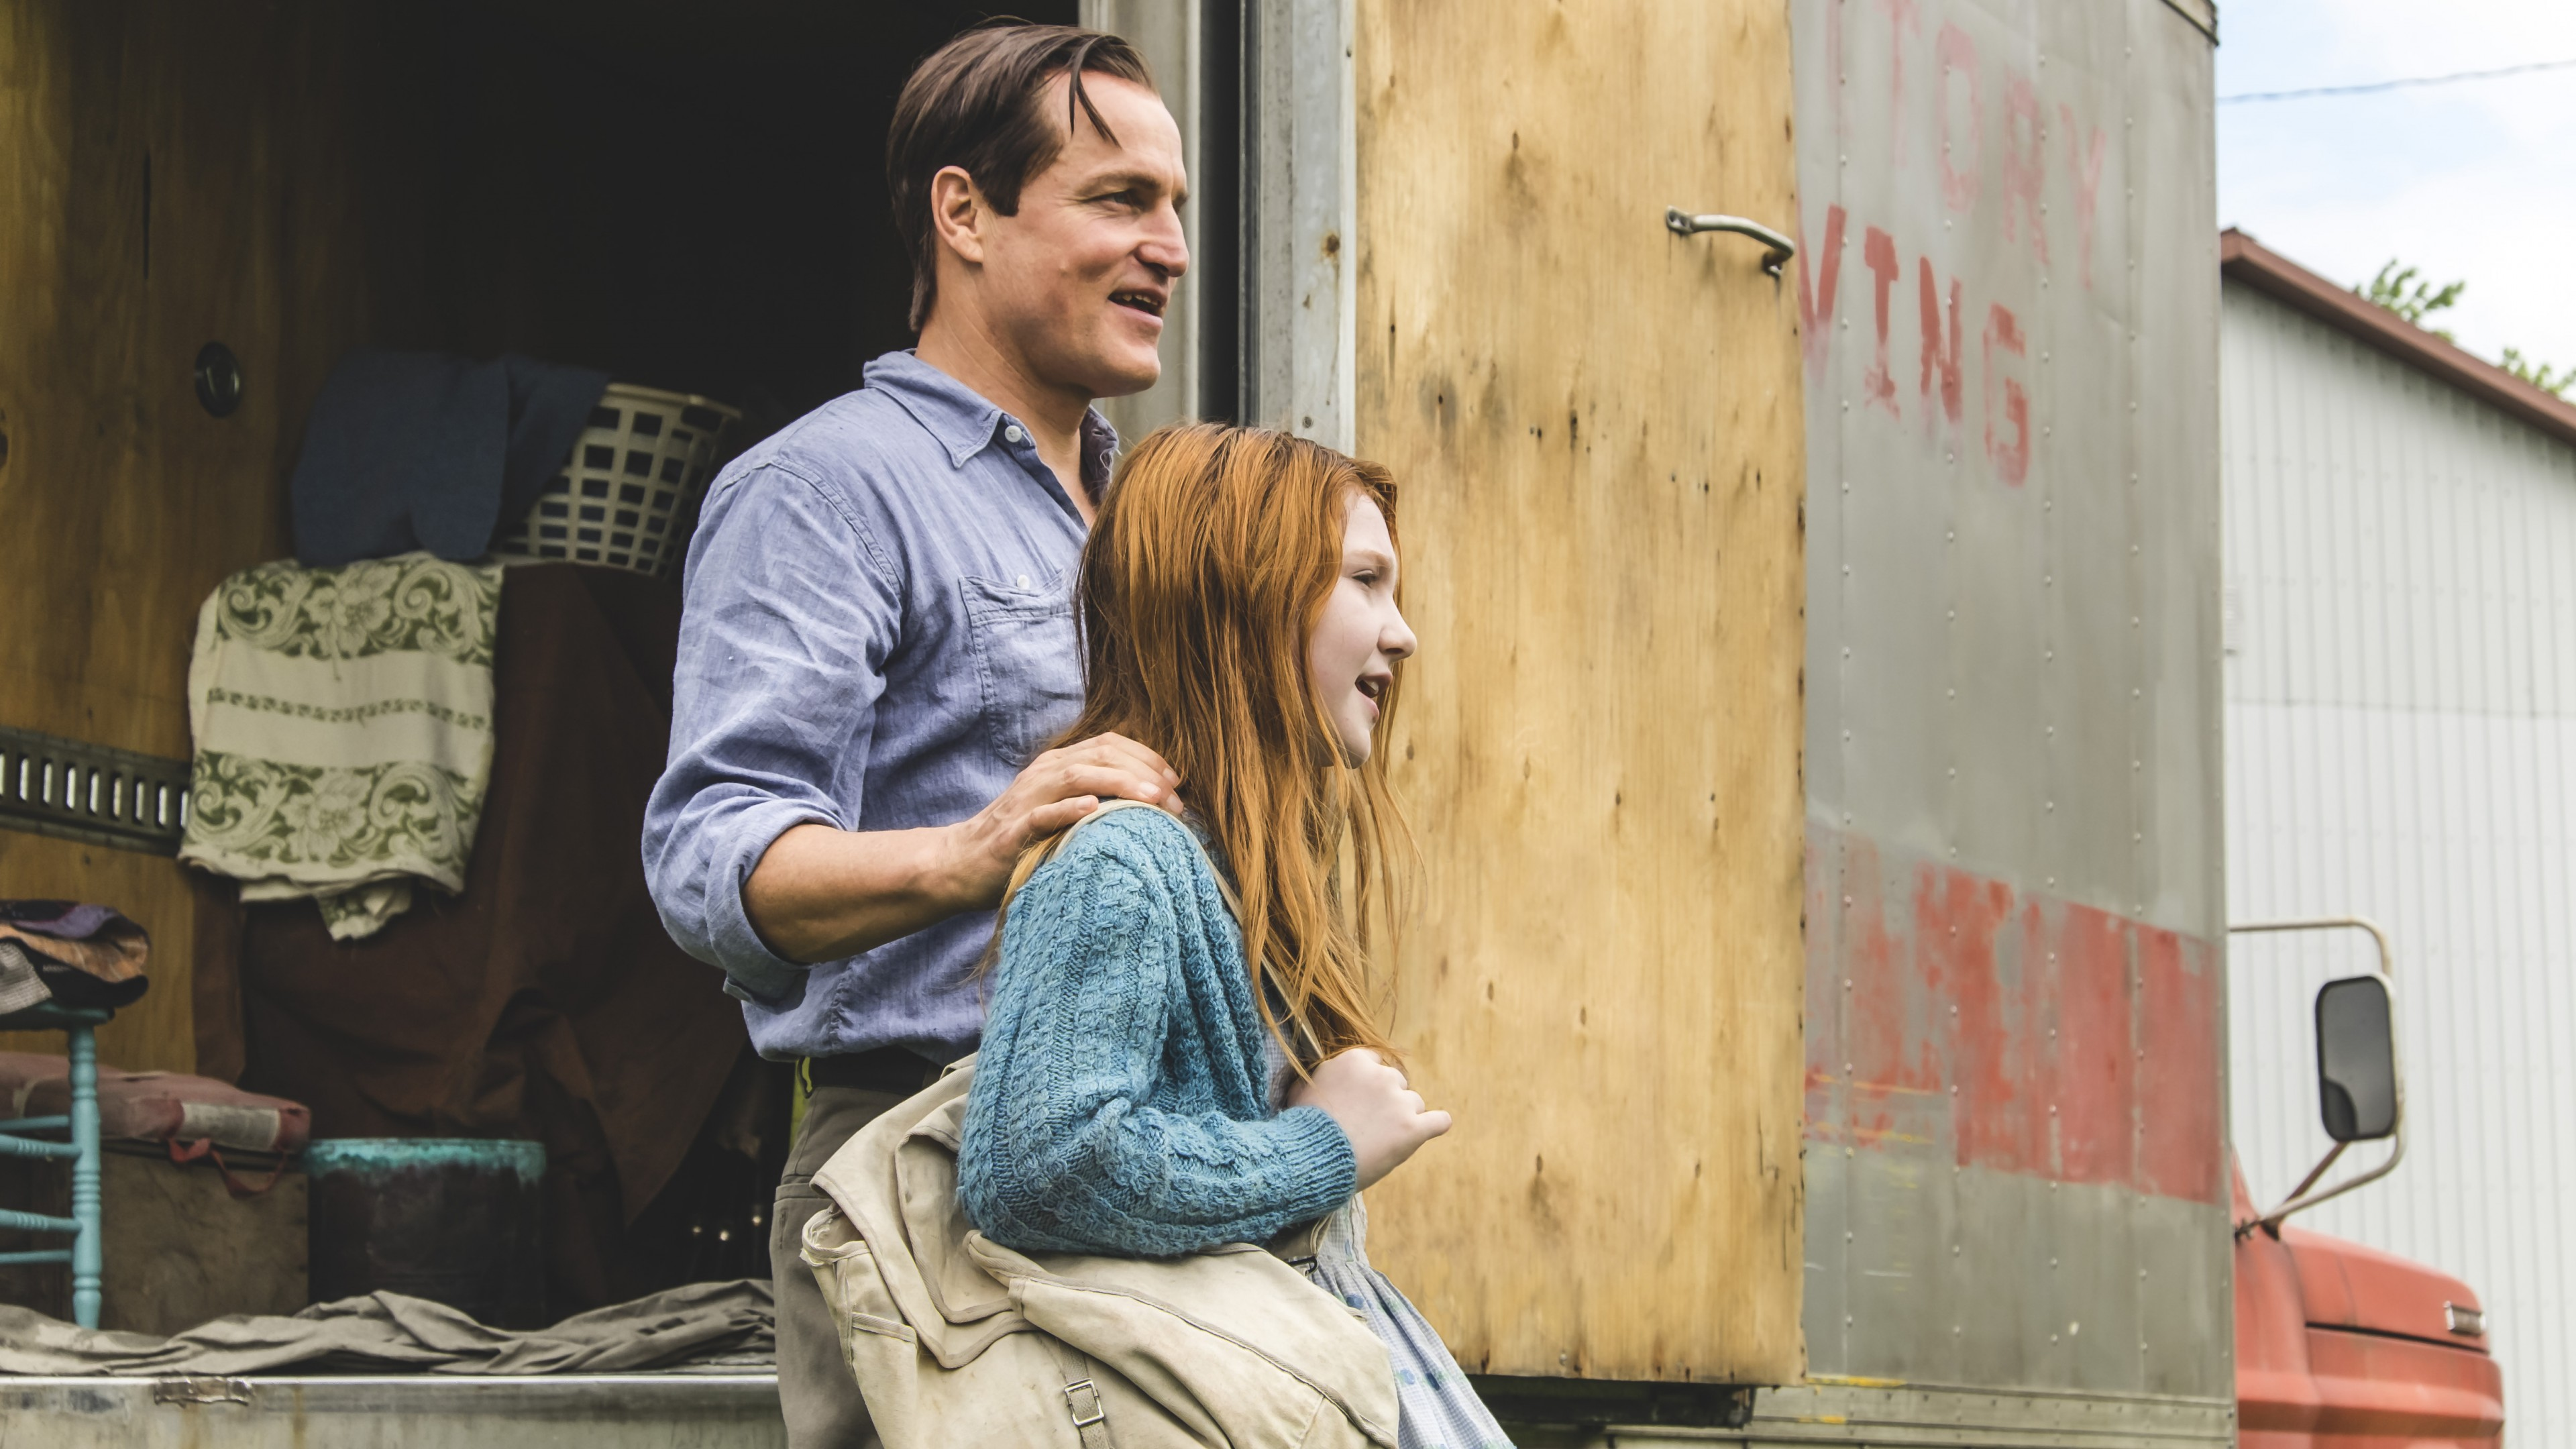 Wallpapers The Glass Castle, Brie Larson, Woody Harrelson, 4k, Movies